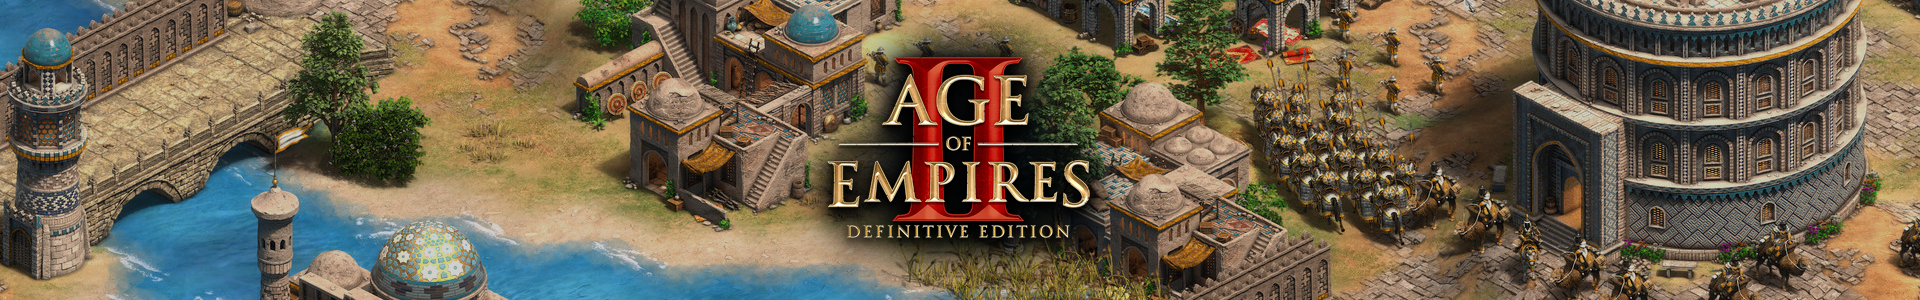 Age of Empires II definitive edition statistics